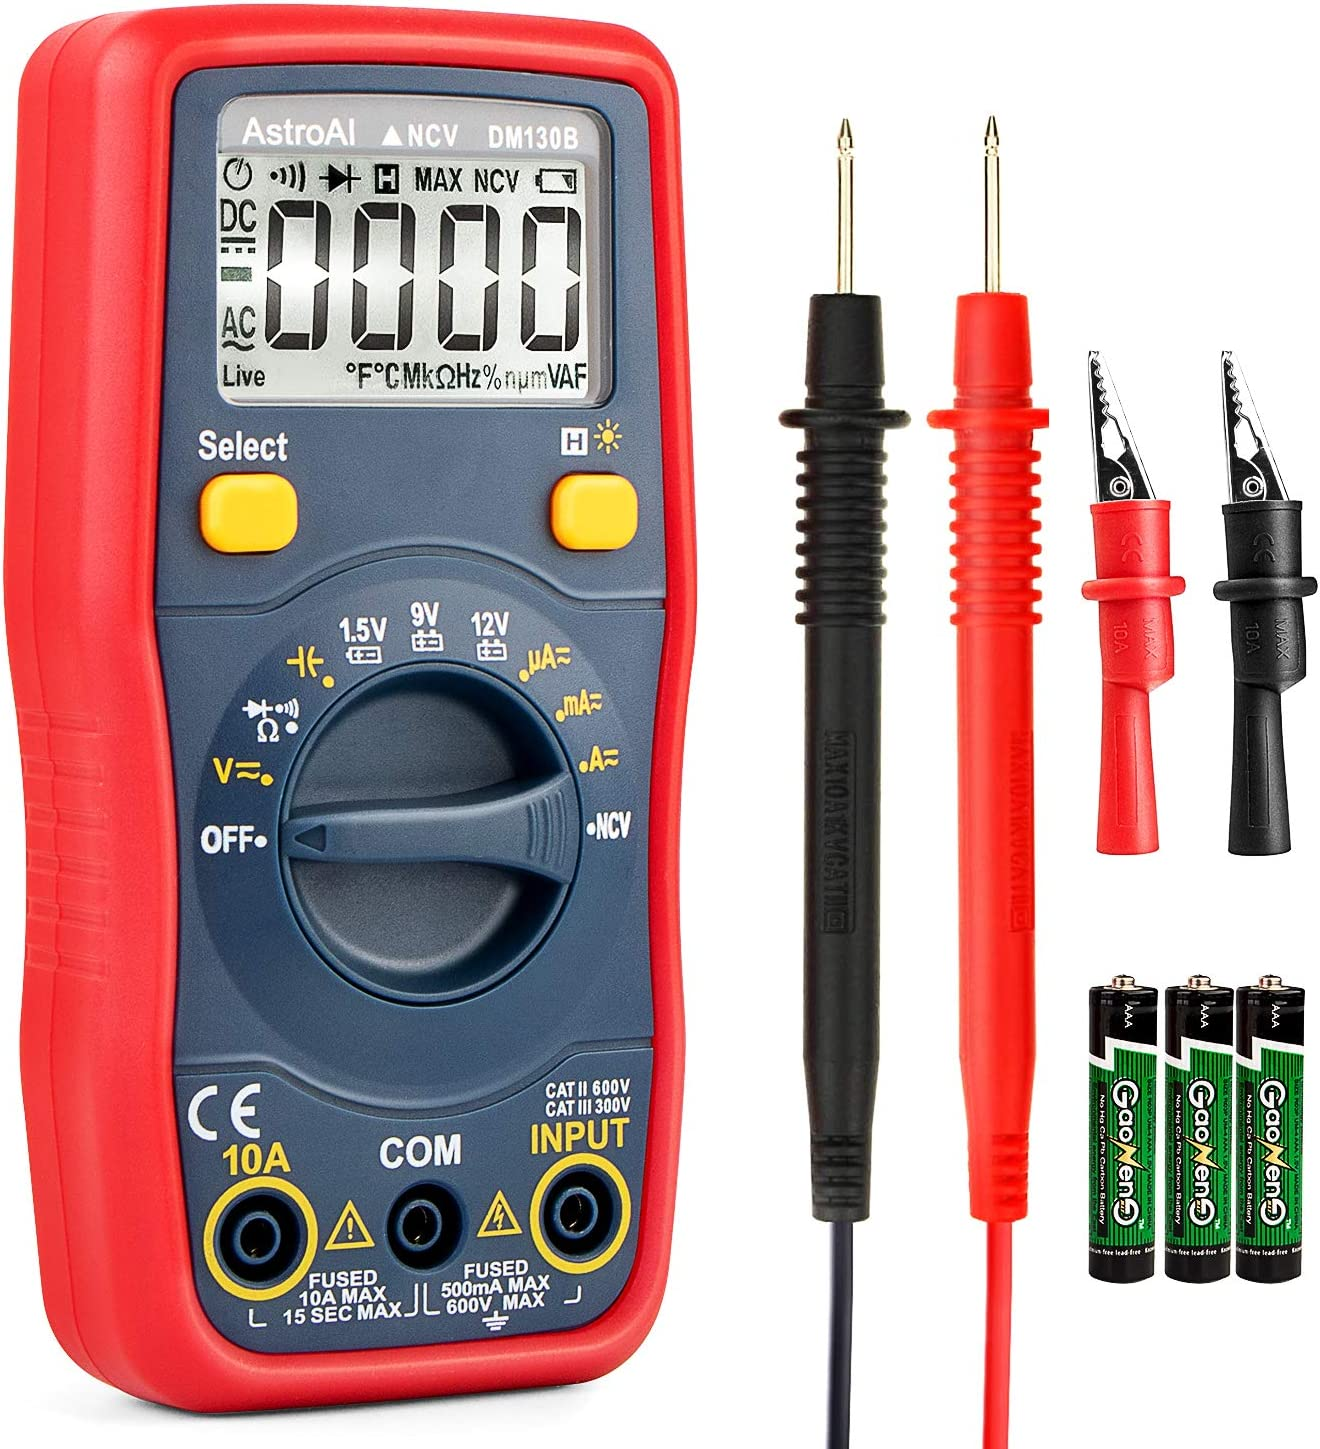 AstroAI Digital Multimeter Auto Ranging Multi Tester DMM/Ohmmeter/Voltmeter 1.5v/9v/12v WAS £15.99 NOW £10.99 w/code F8RGT32X @ Amazon